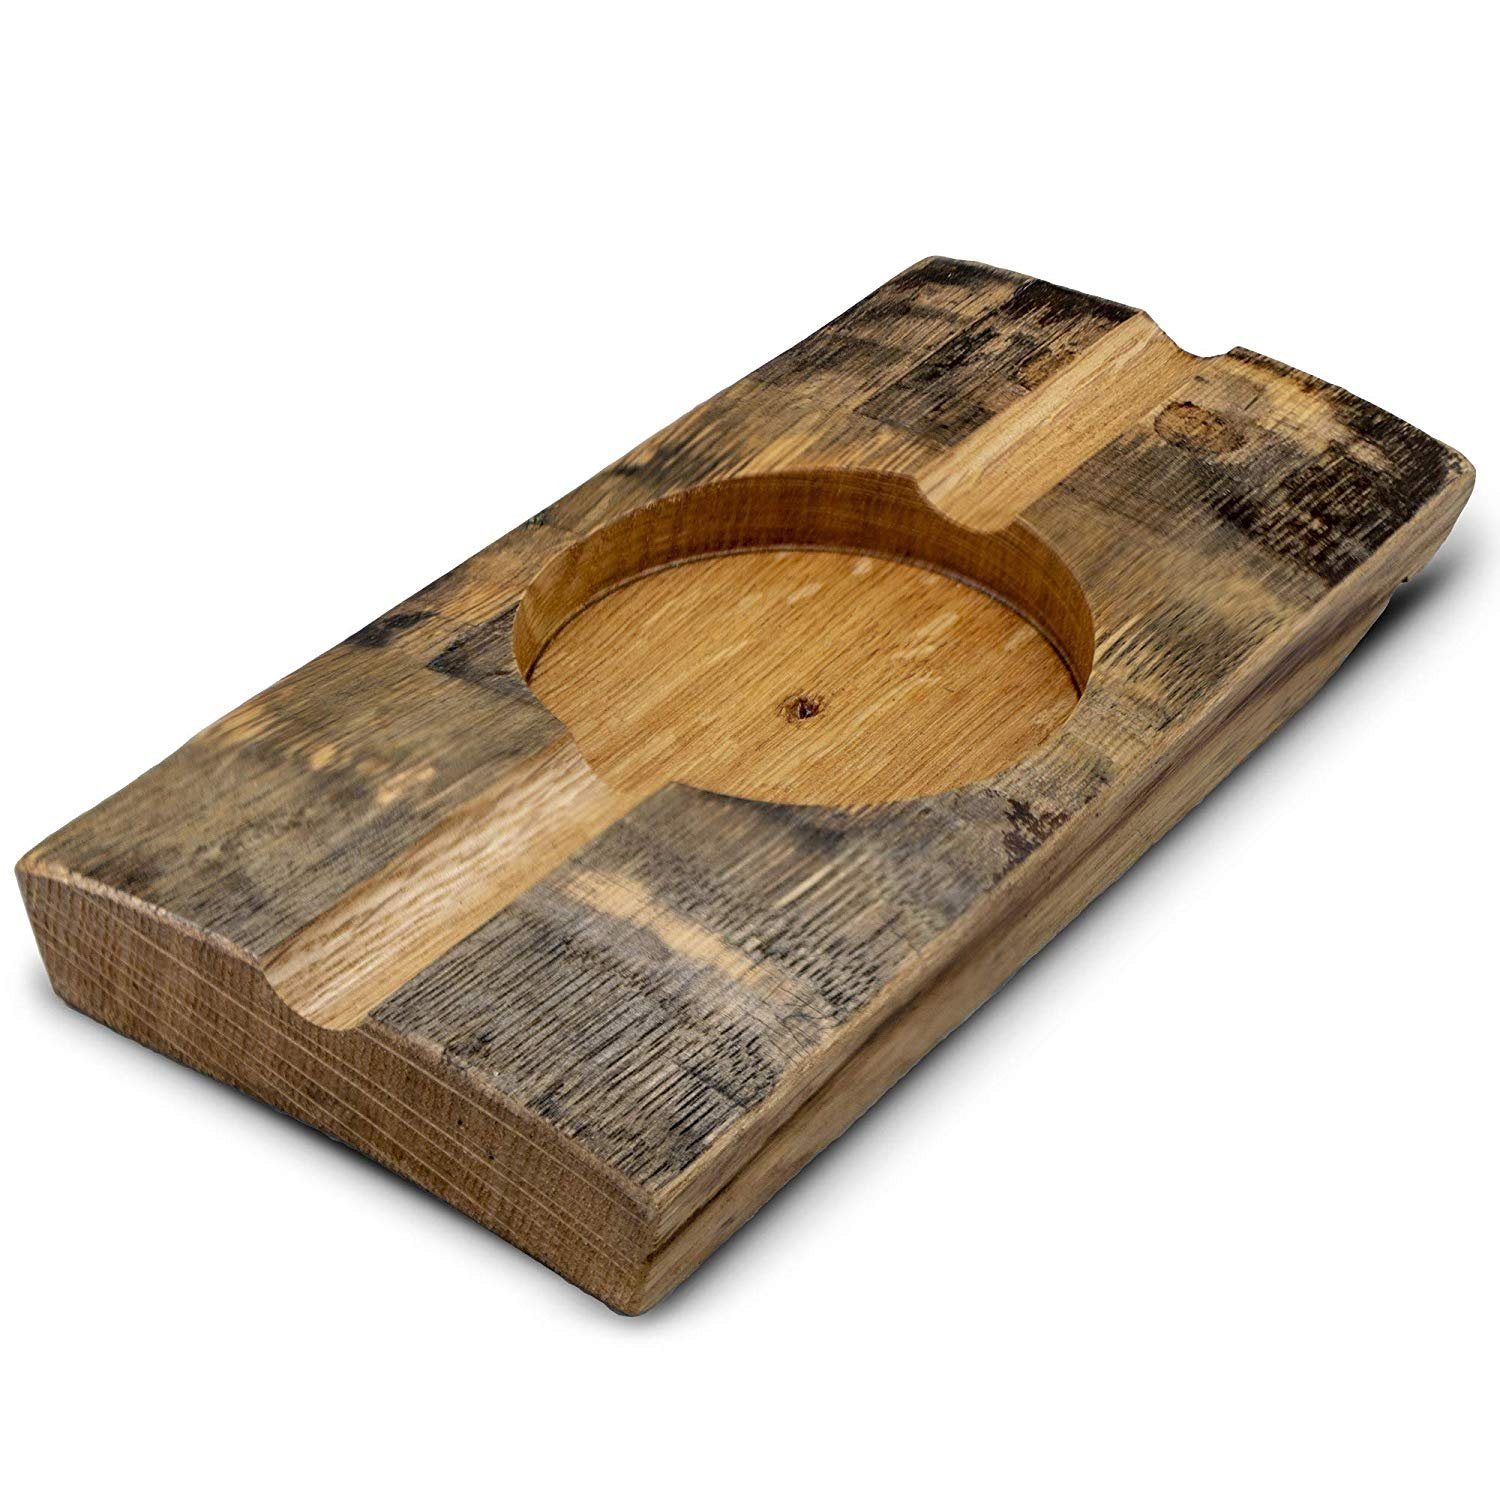 Briar and Oak Bourbon Barrel Stave Cigar Ashtray – Made in The USA from Reclaimed Authentic Bourbon Barrels - Great Cigar Accessories Gift Set for Men